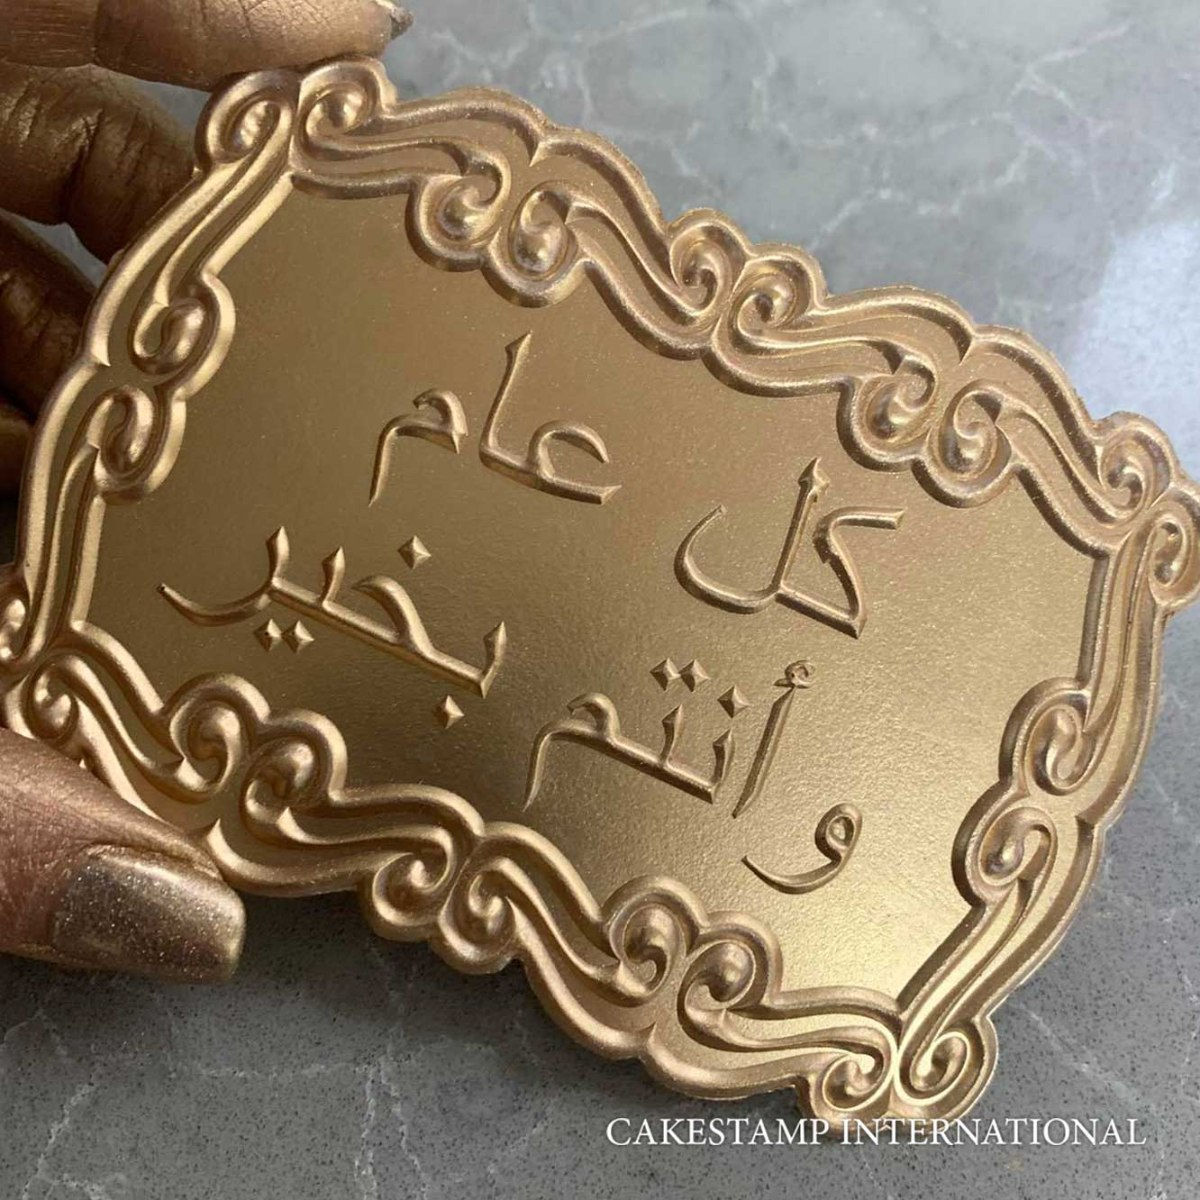 Blessing In Arabic MOULD   Flexible Polymer  MOLD For Fondant And Chocolate